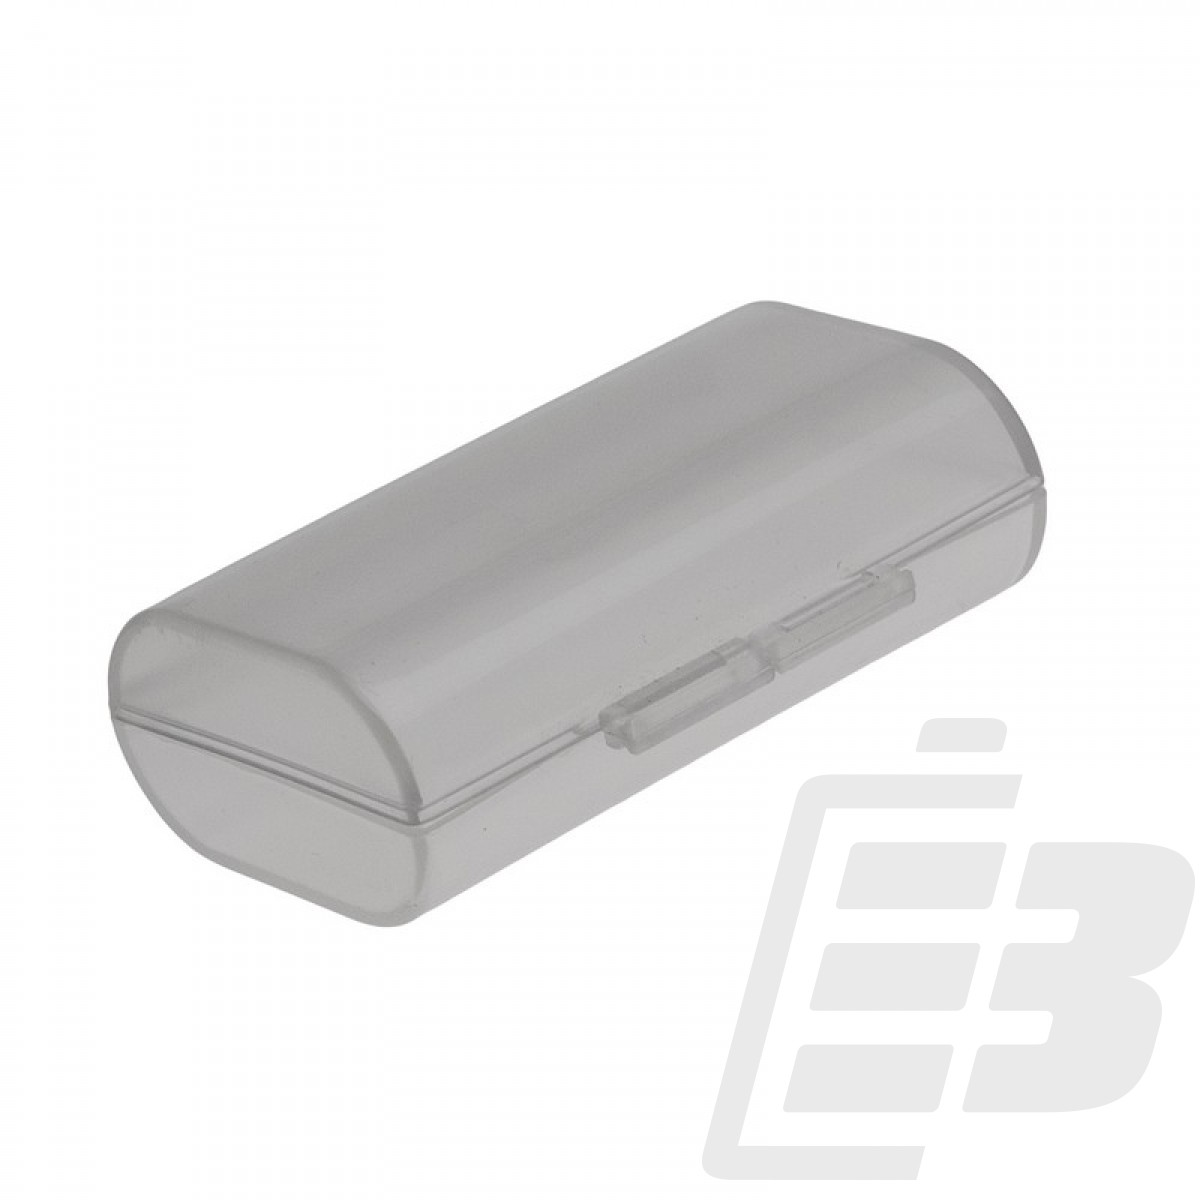 Multienergy Battery Case for 2 AAA batteries_1